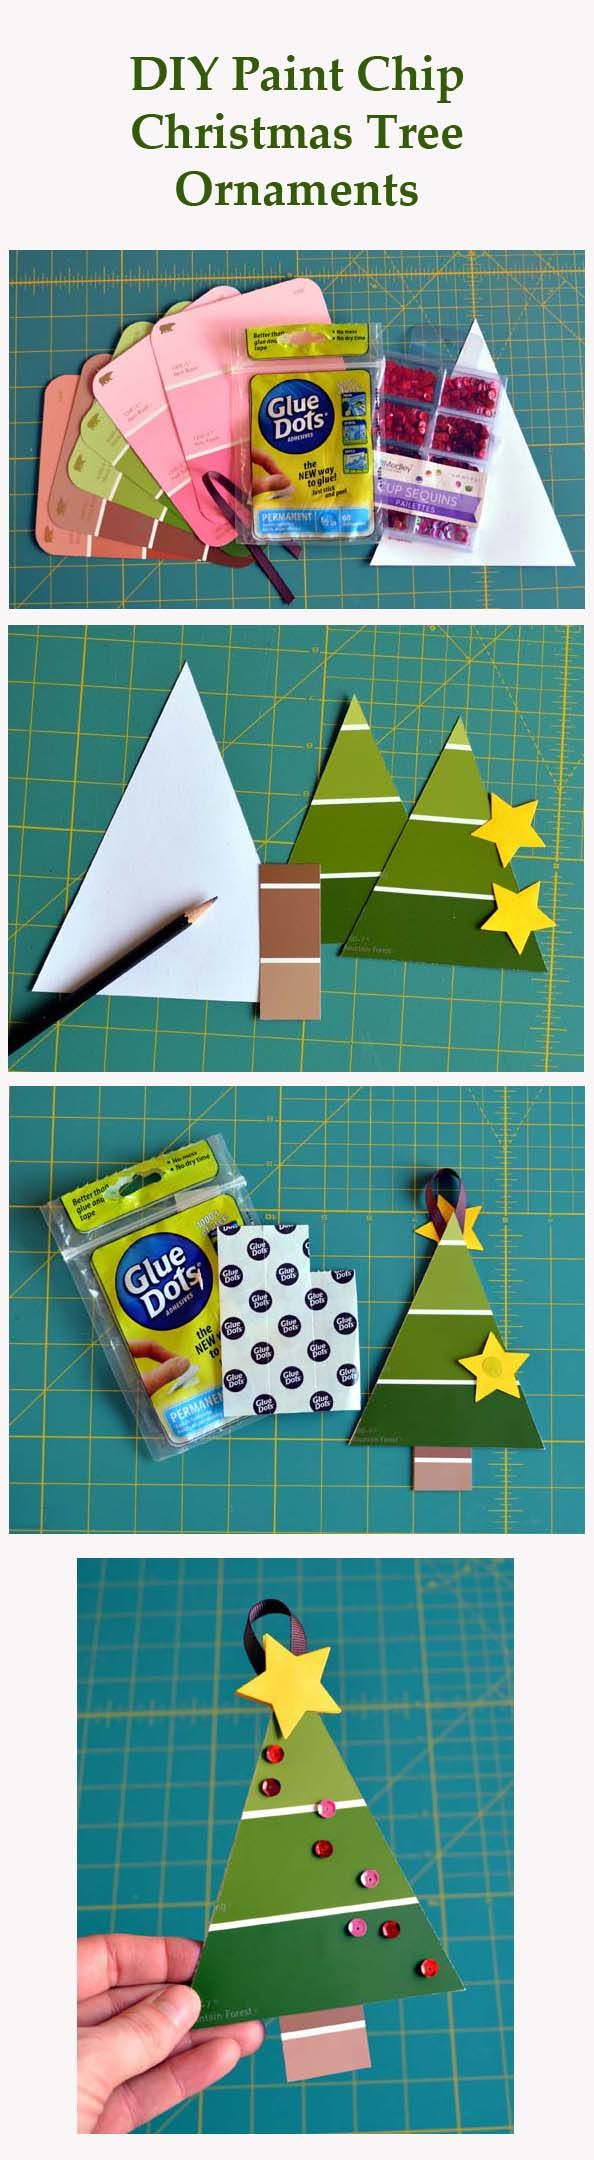 Designer Dawn has a cute and quick Christmas Tree project using paint chips - A perfect kids craft for Christmas! This is a simple and inexpensive ornament to make with young kids for the holidays.